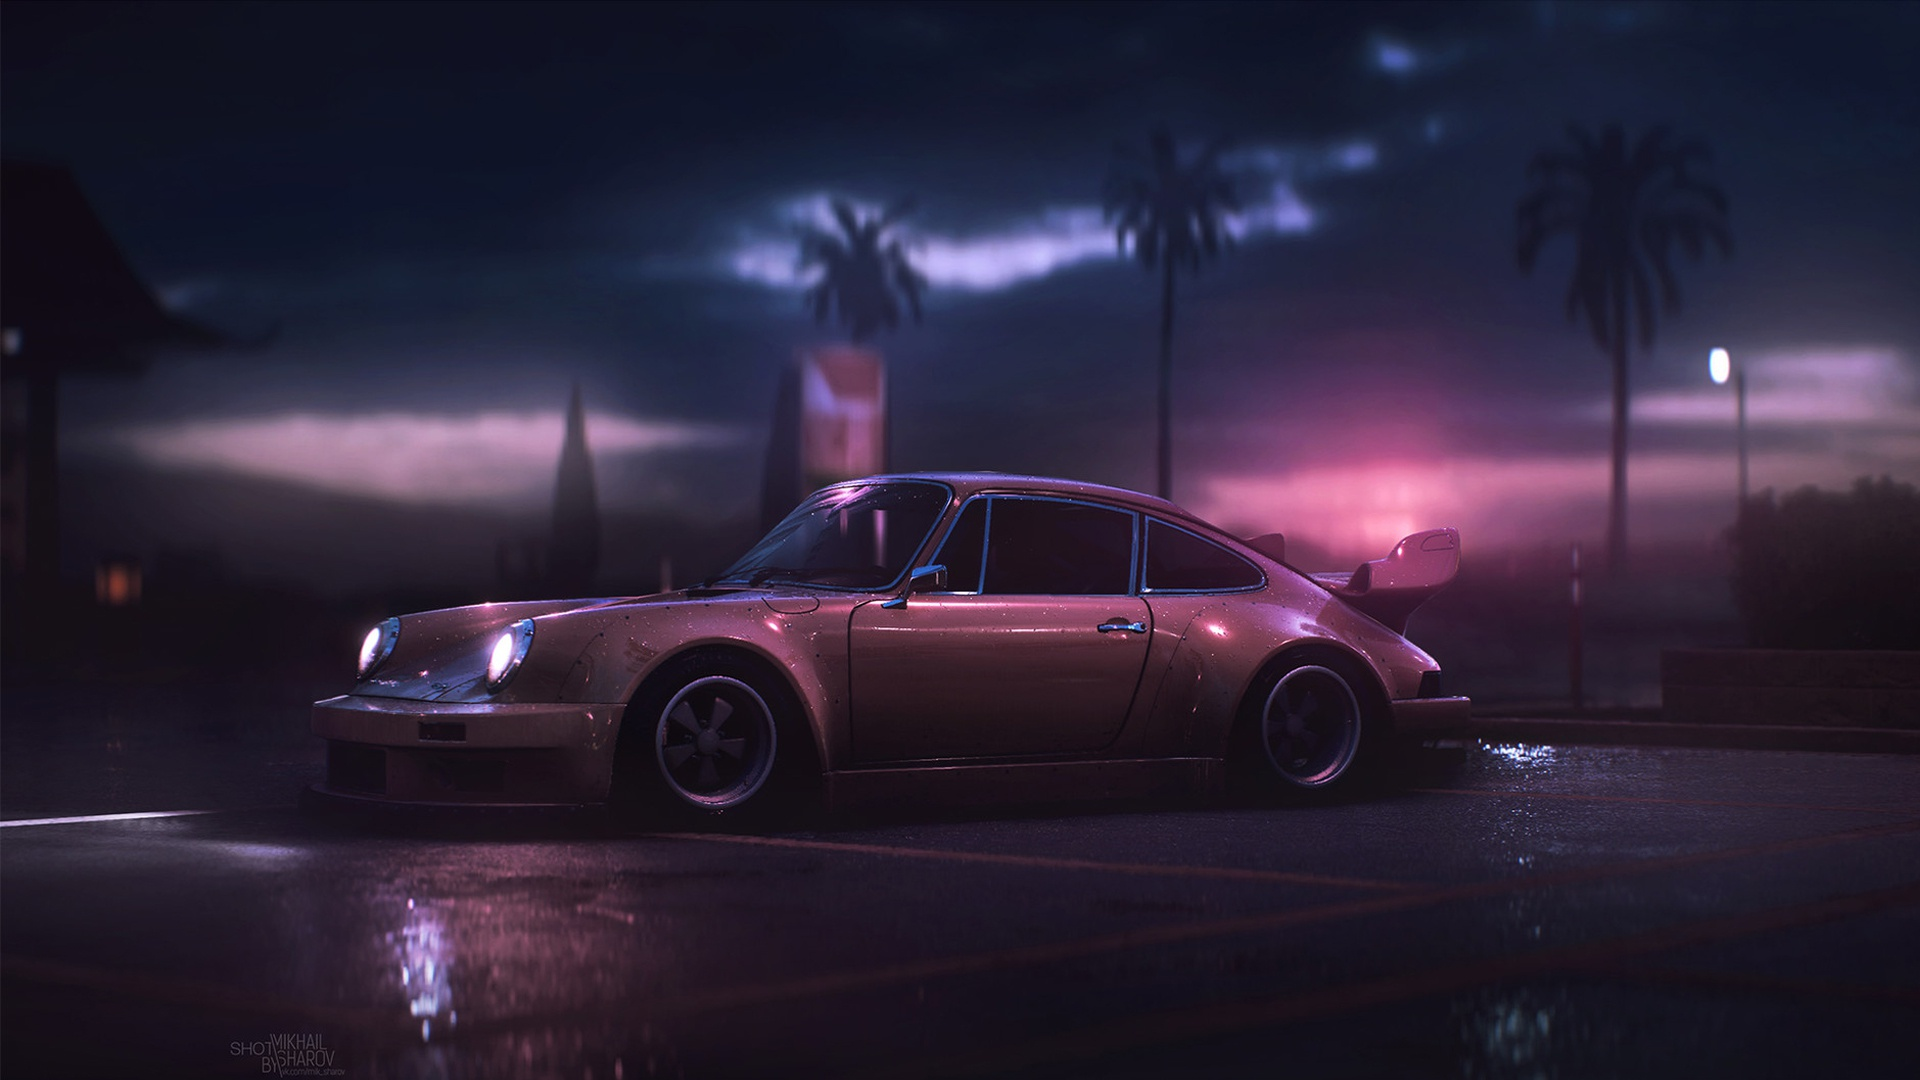 Rwb 4k Wallpaper: Old Porsche 911, HD Cars, 4k Wallpapers, Images